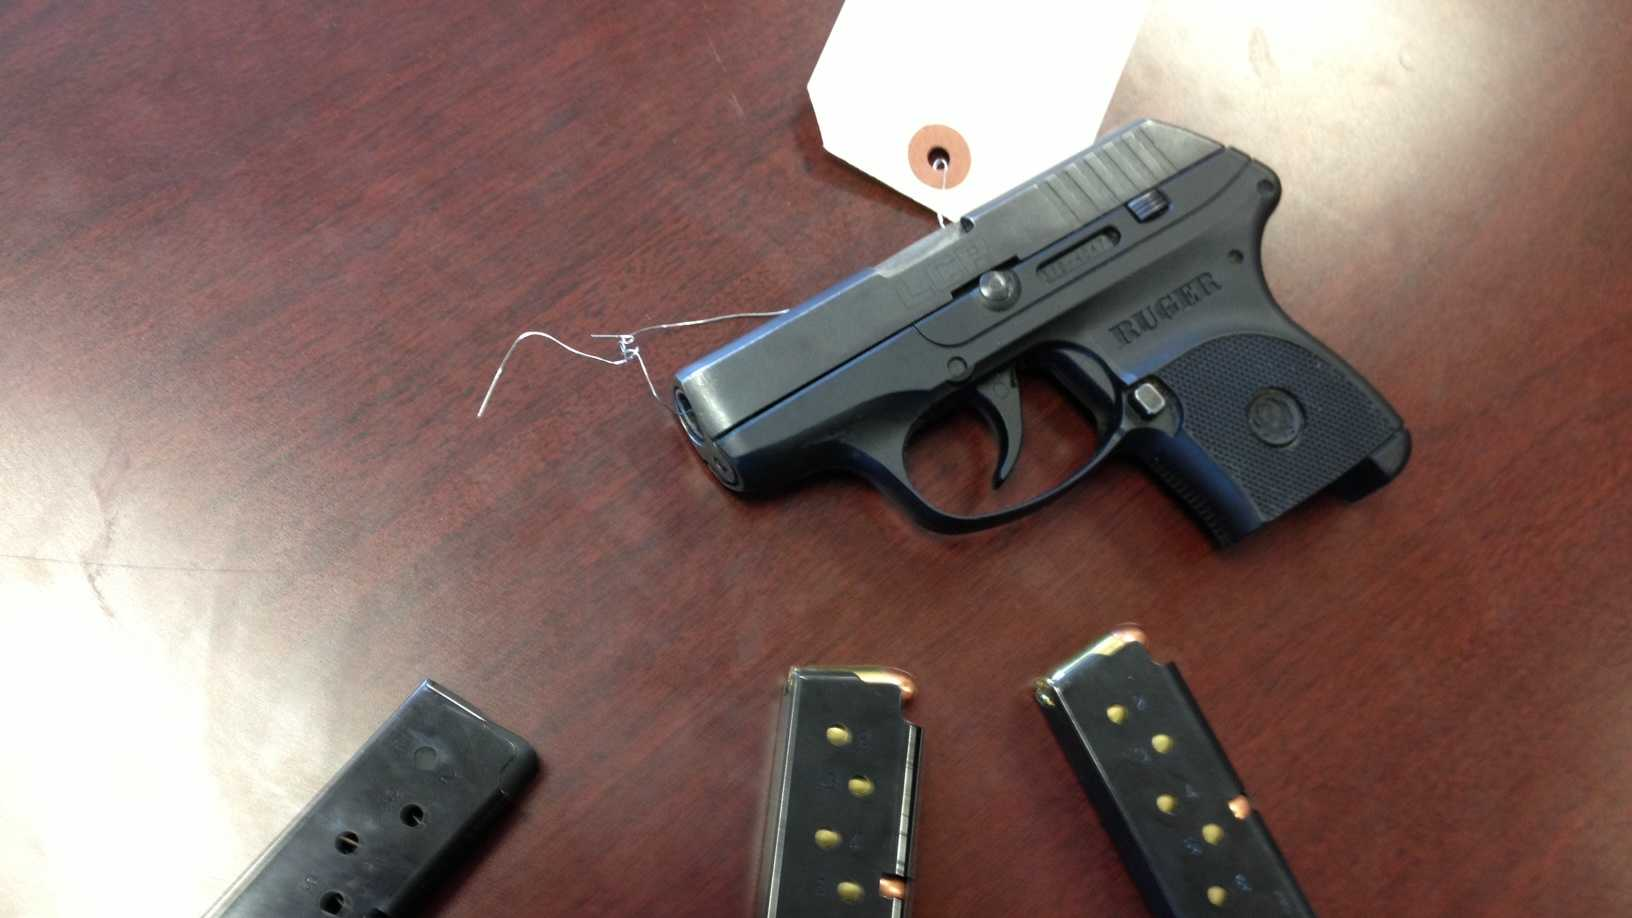 Gun seized during airport security check in Des Moines.